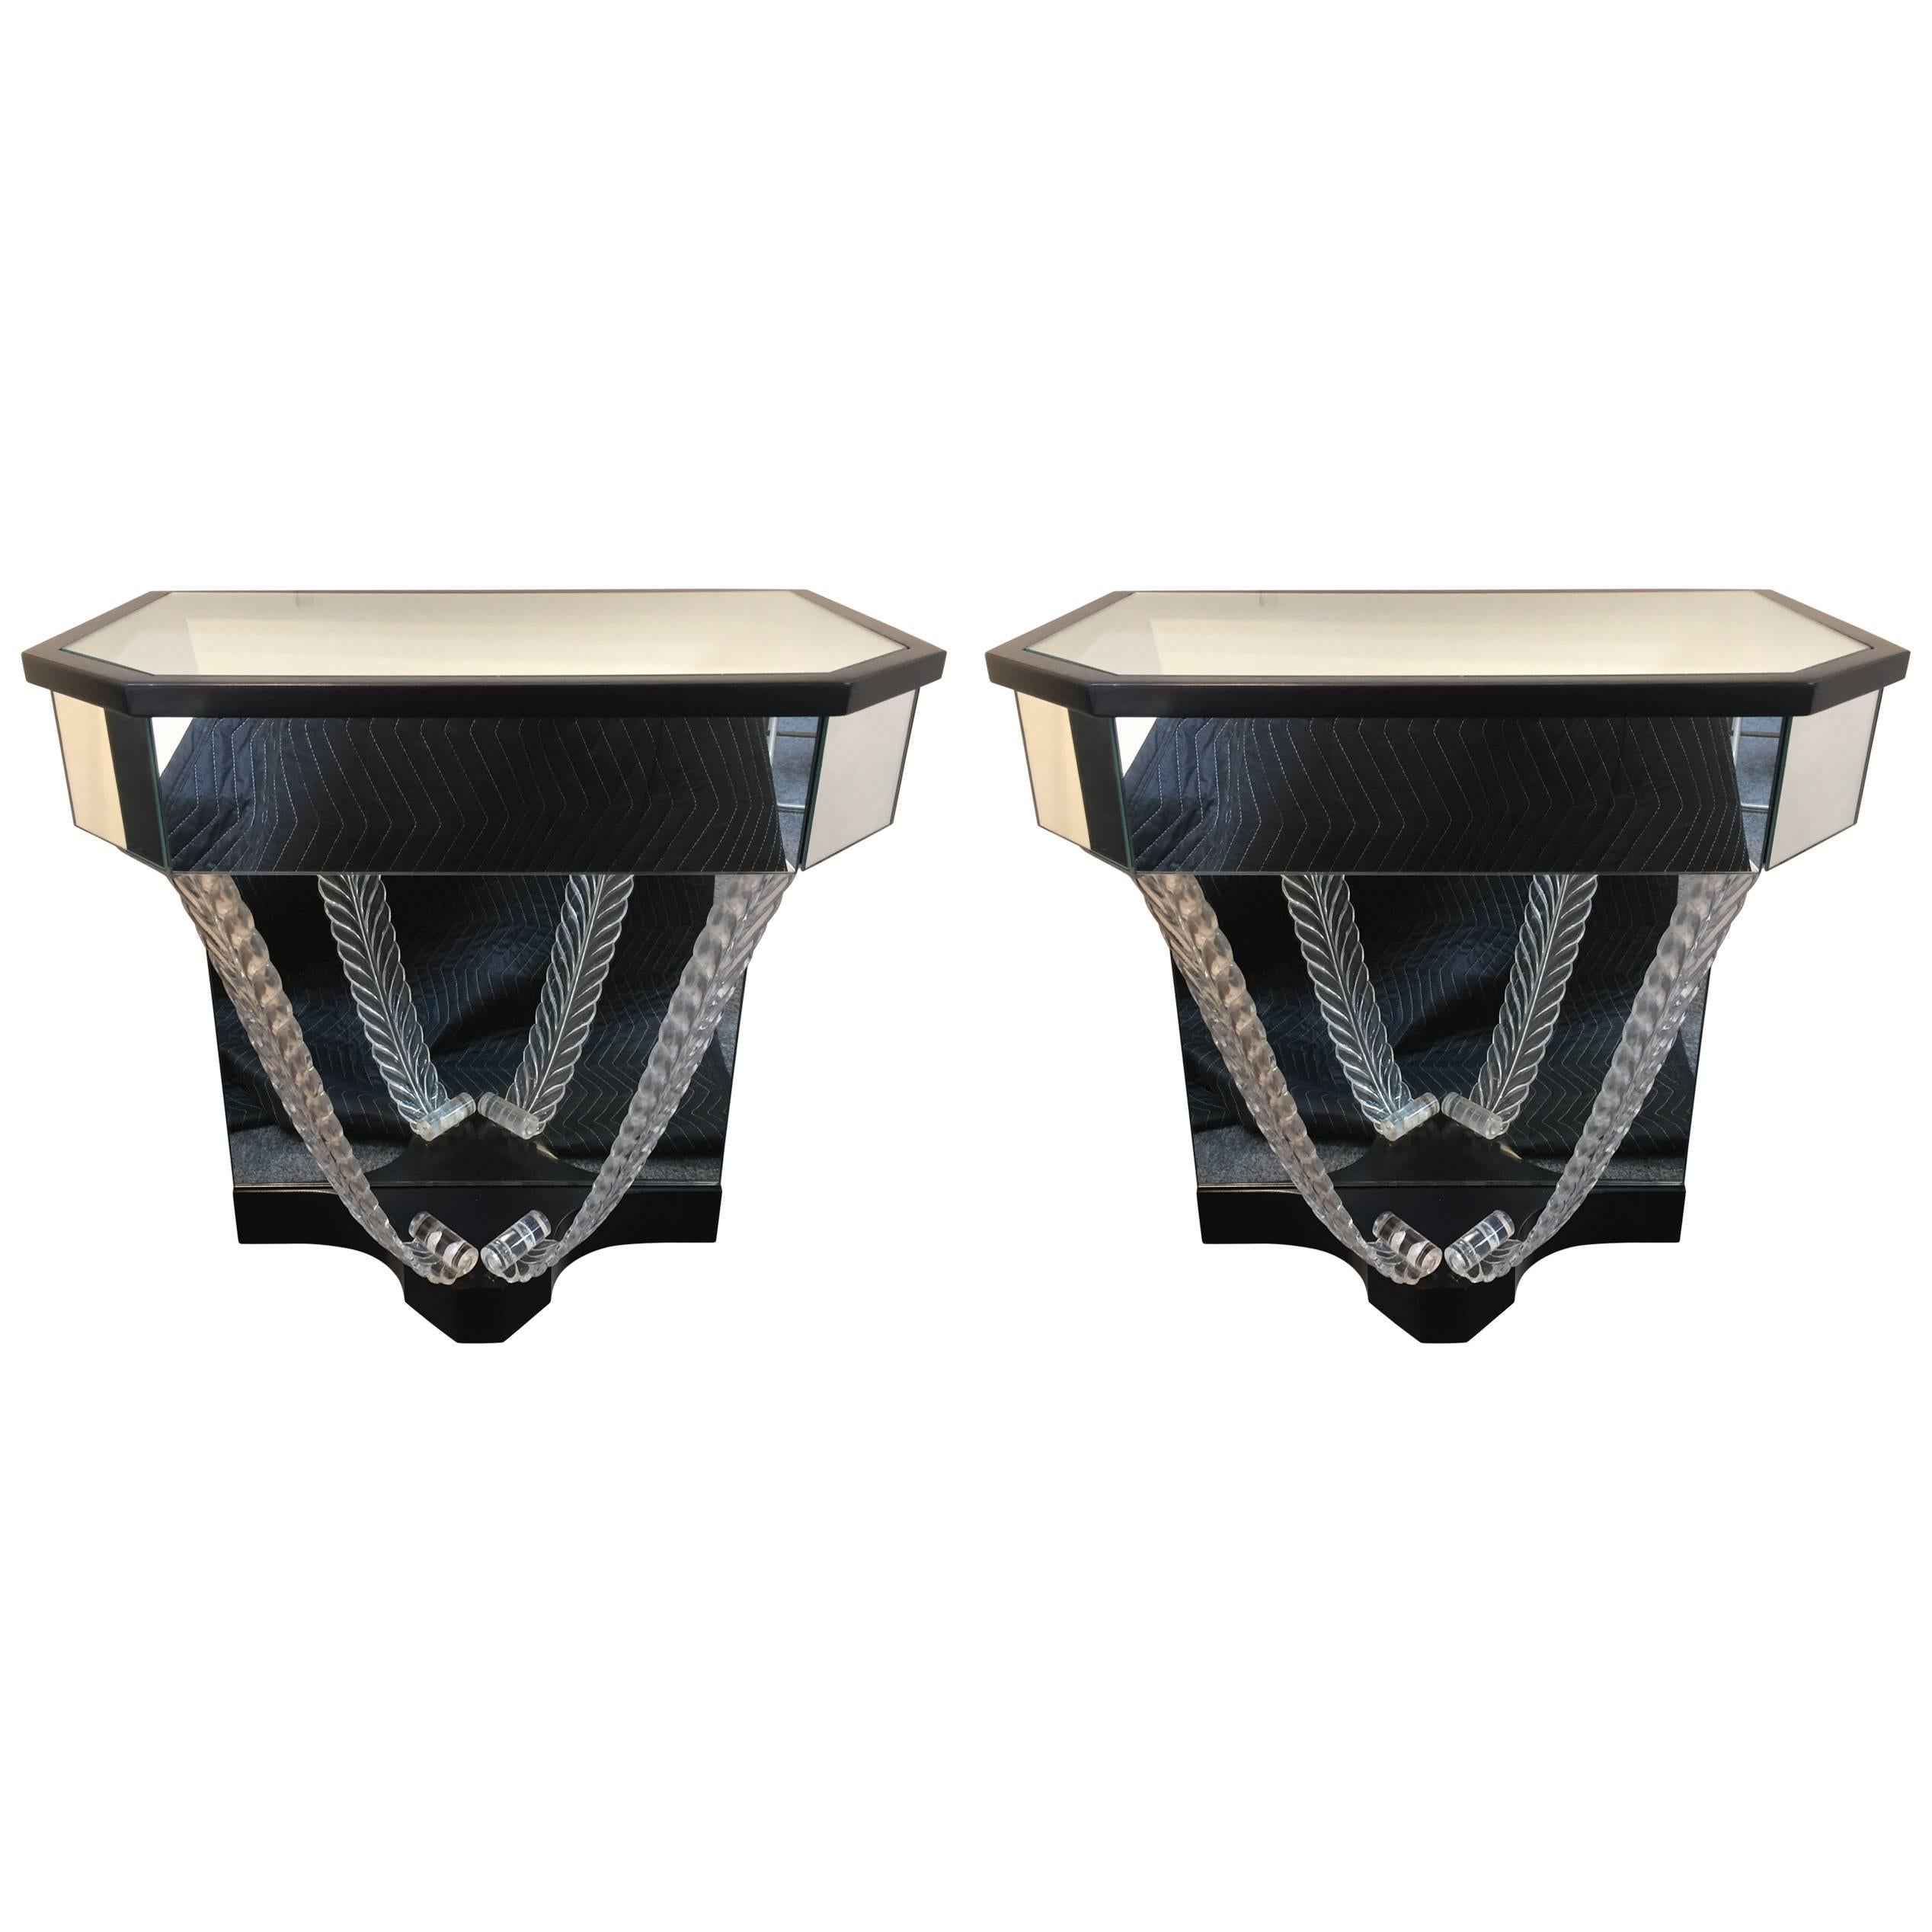 Pair of Lorin Jackson, Grosfeld House Wall Nightstands / End Tables